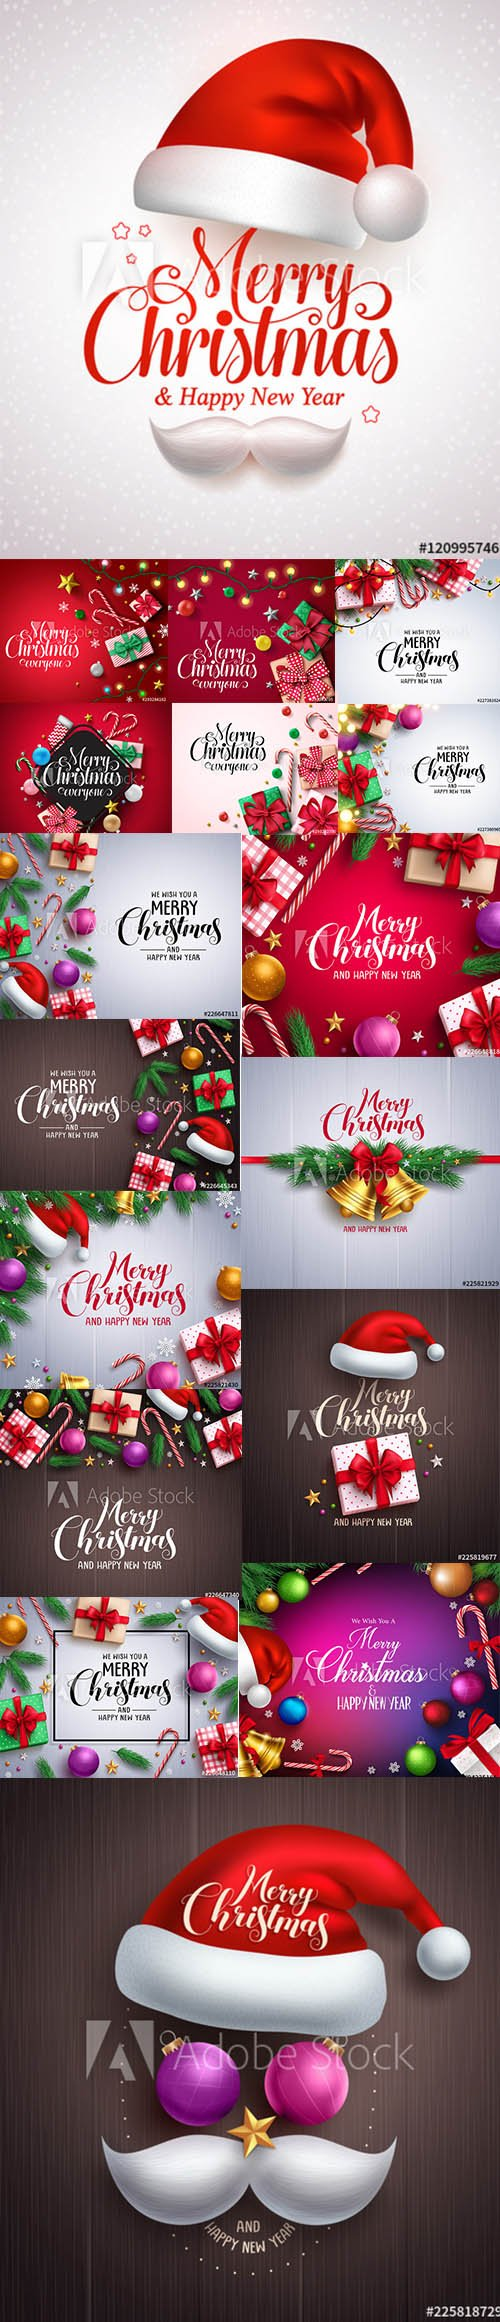 Merry Christmas and Happy New Year Backgrounds Template with Decor vol3